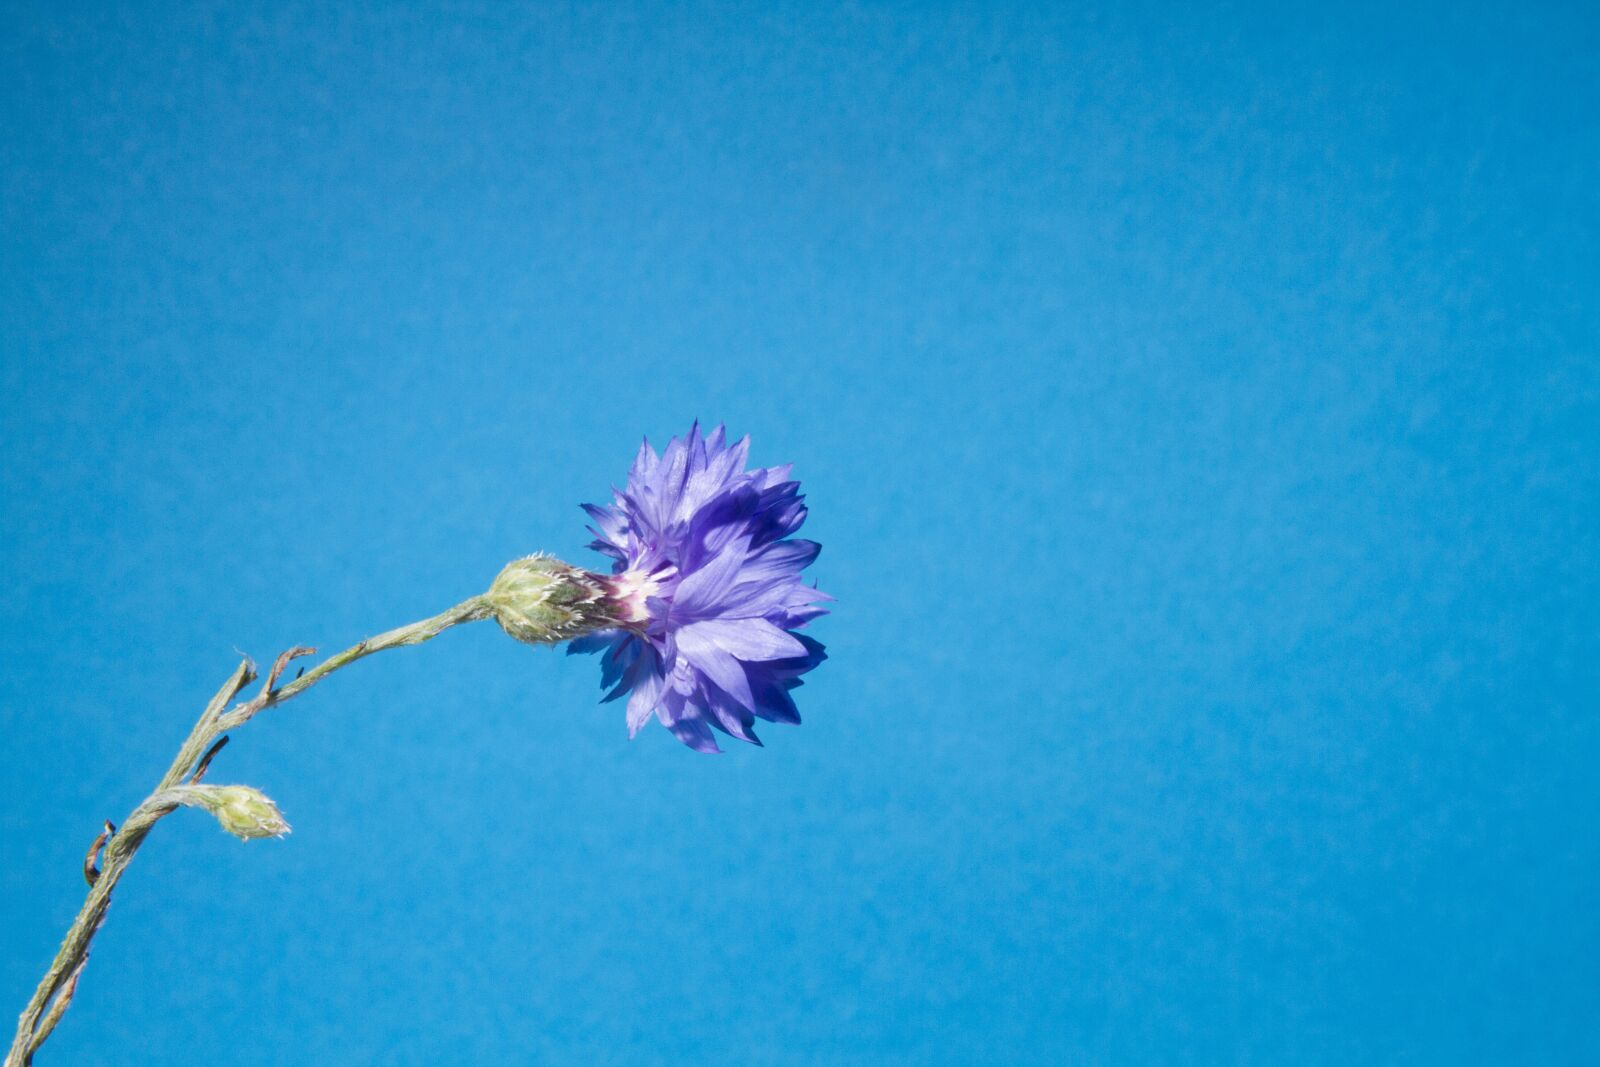 """Canon EOS 7D sample photo. """"Flower, nature, spring"""" photography"""